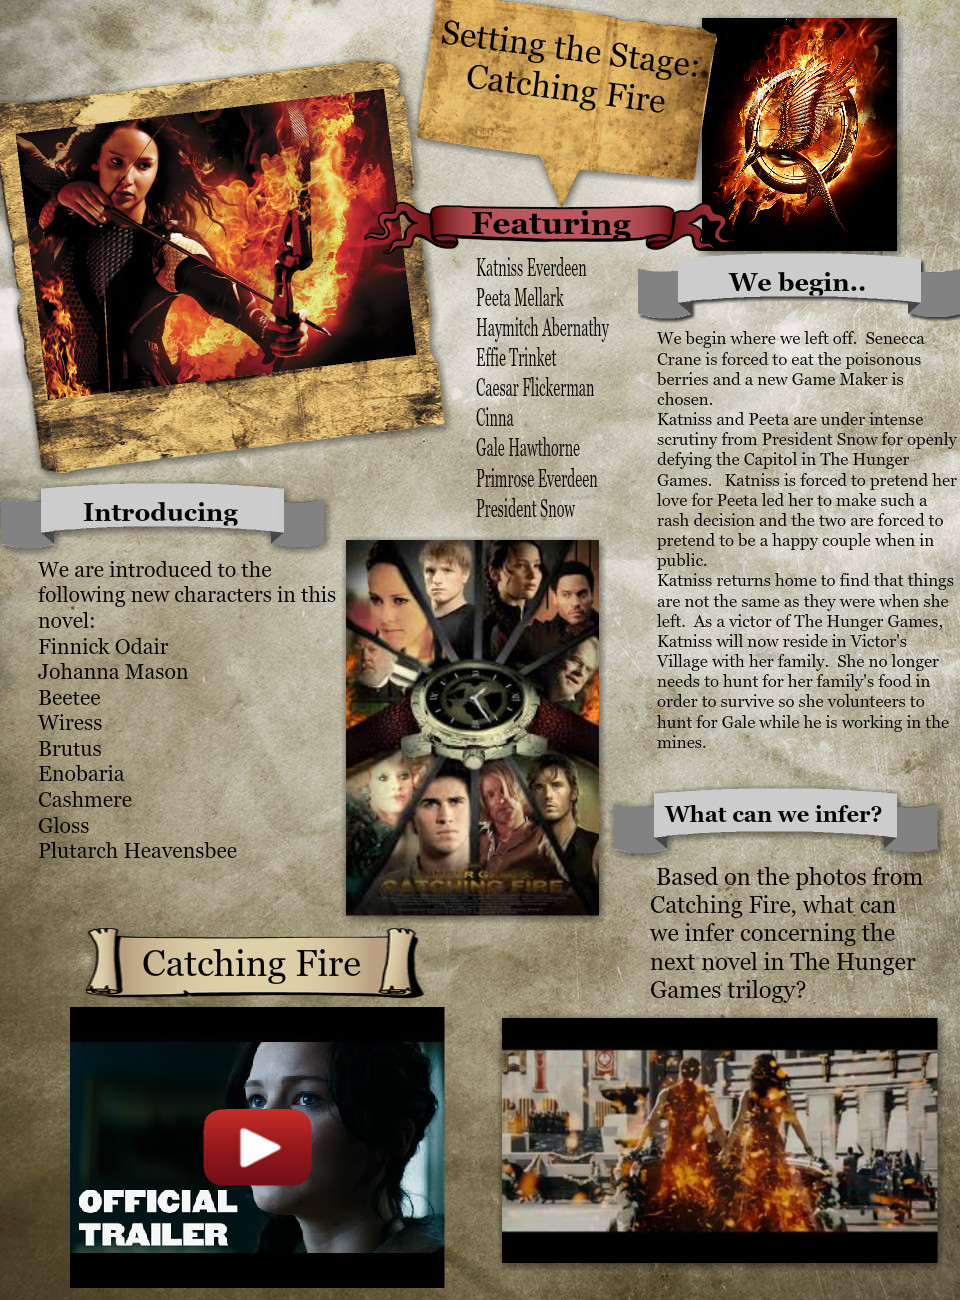 Setting the Stage:  Catching Fire